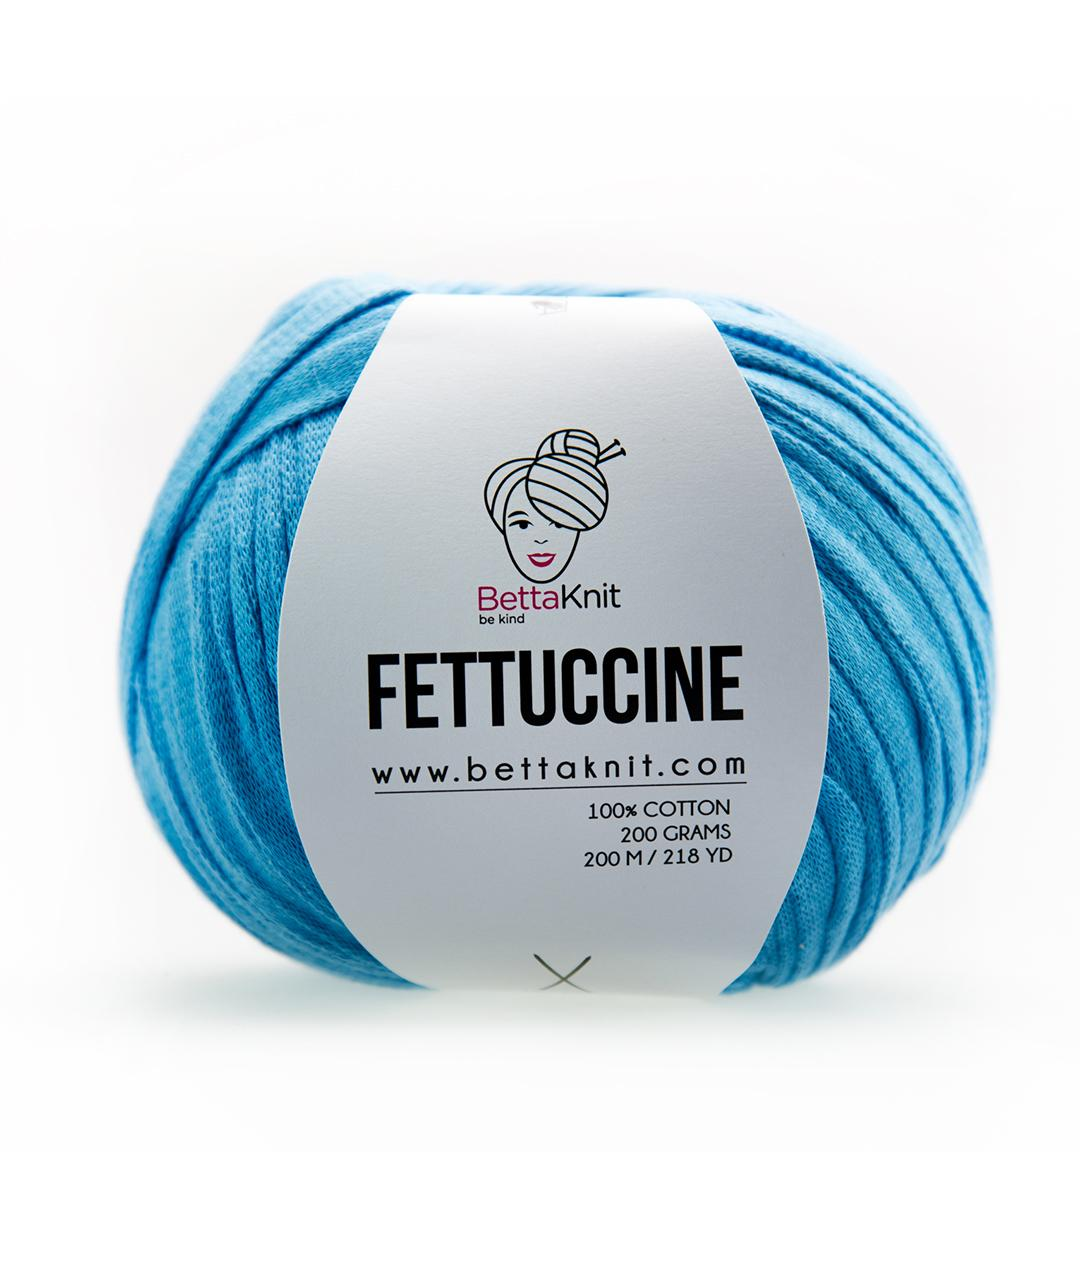 Home Decor Collection - HomewareCotton - Yarns - Fettuccine - 1